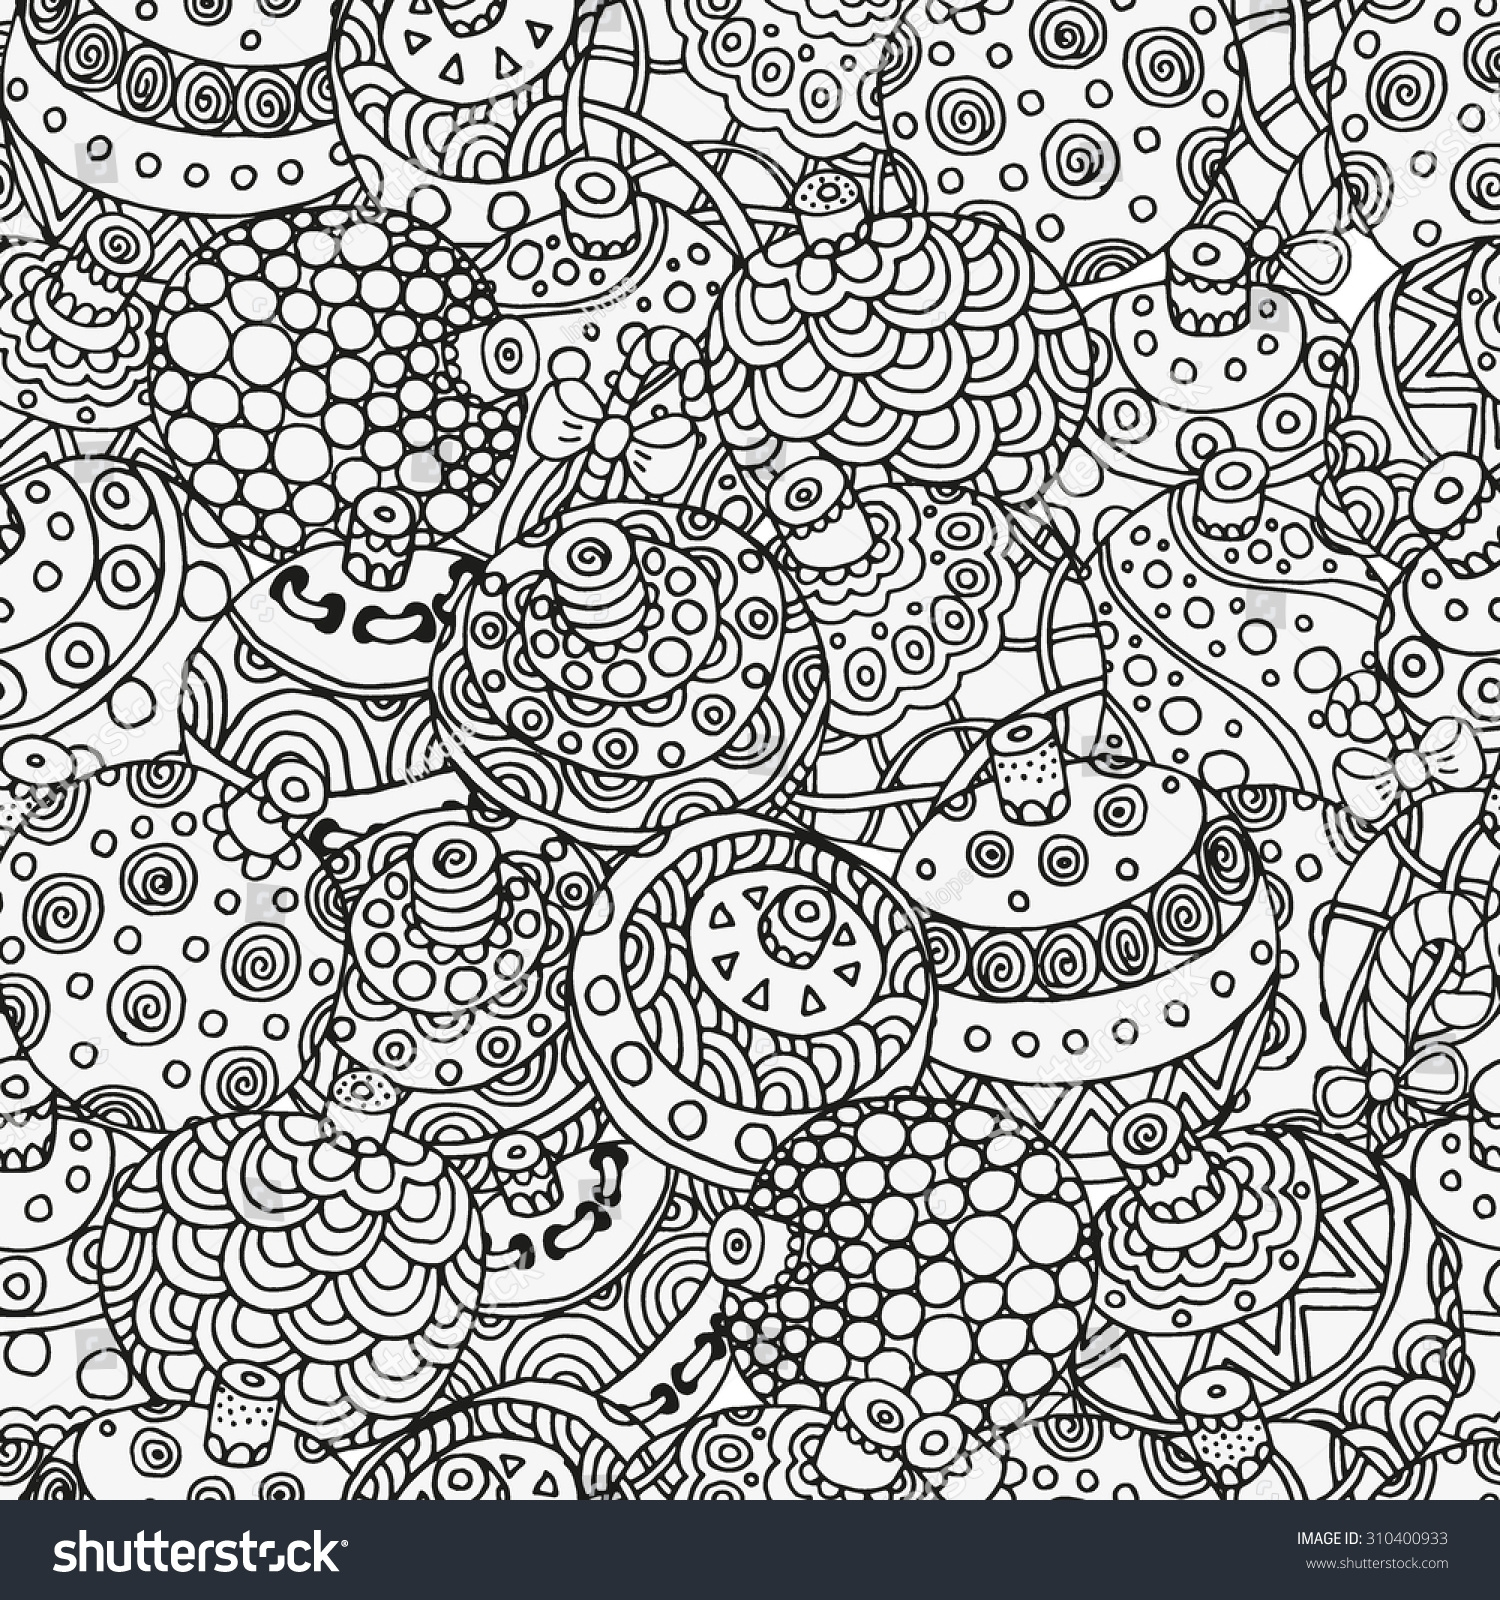 unicorn coloring pages for adults - stock vector seamless christmas hand drawn decorative elements in vector fancy christmas balls pattern for